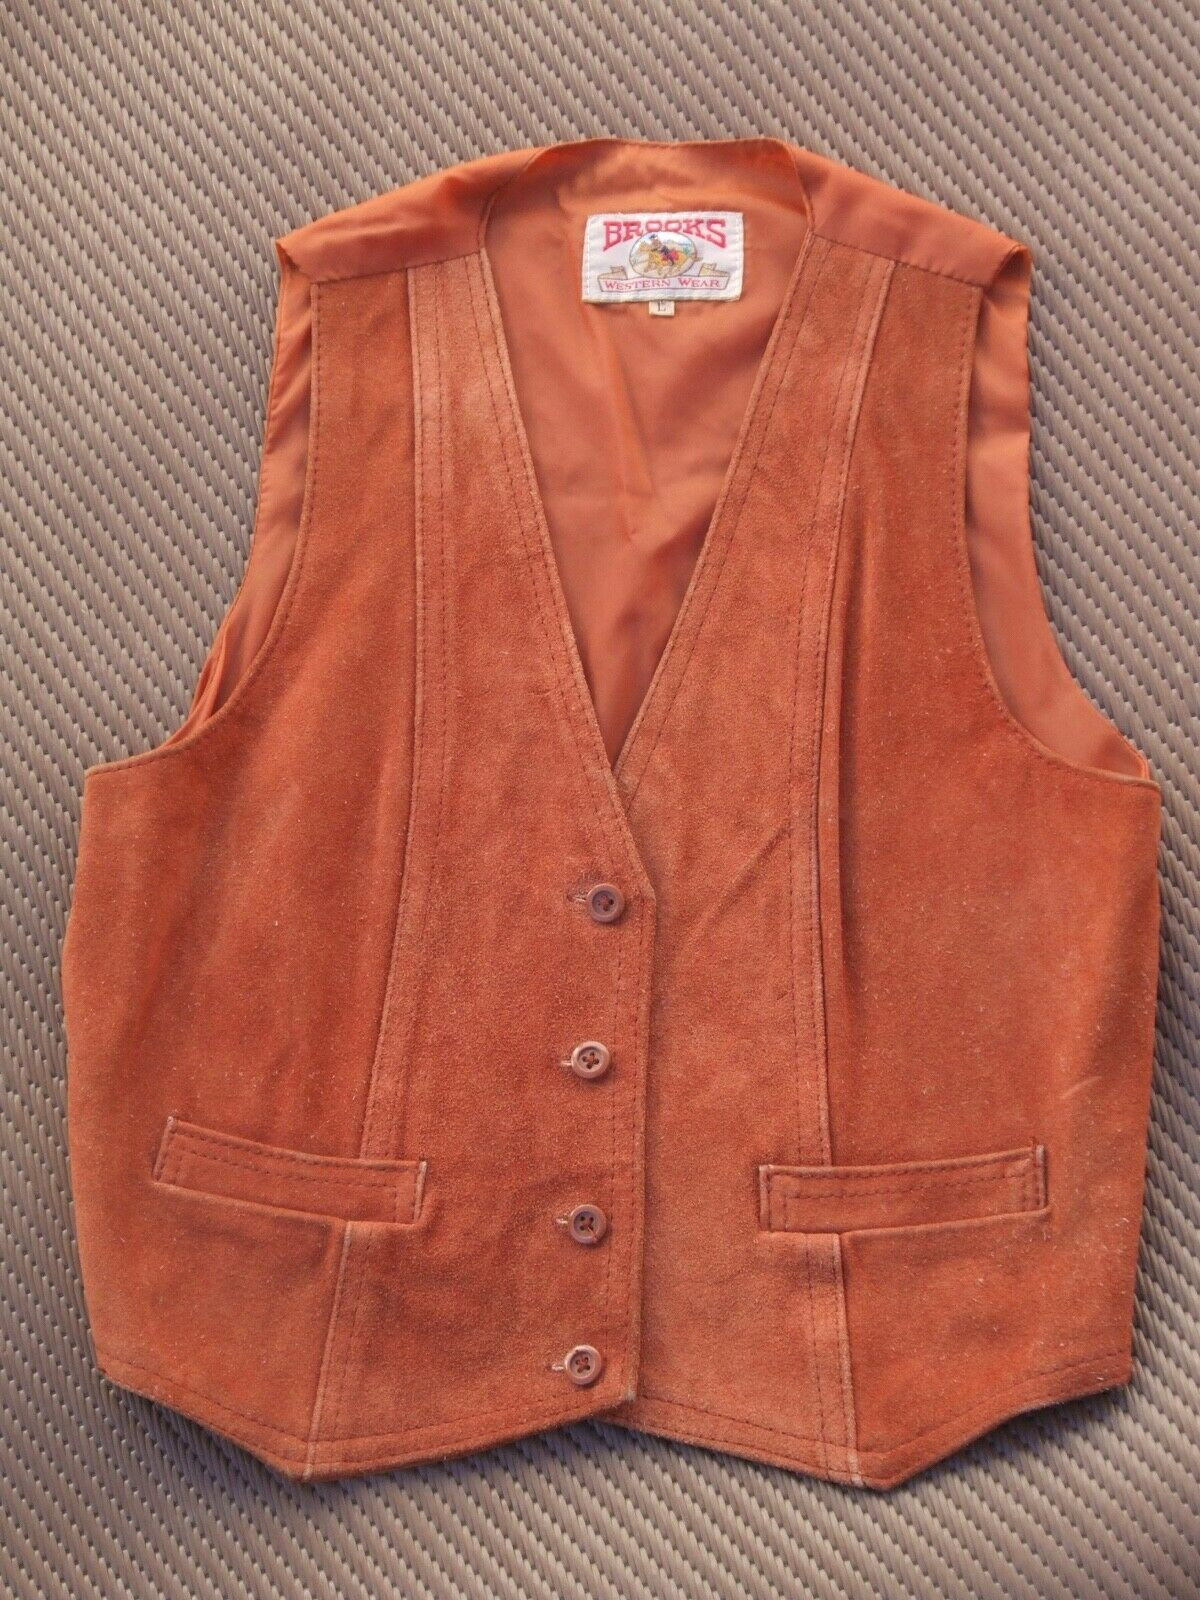 Suede Leather Vest Western 70s button up small buckle lined pockets small